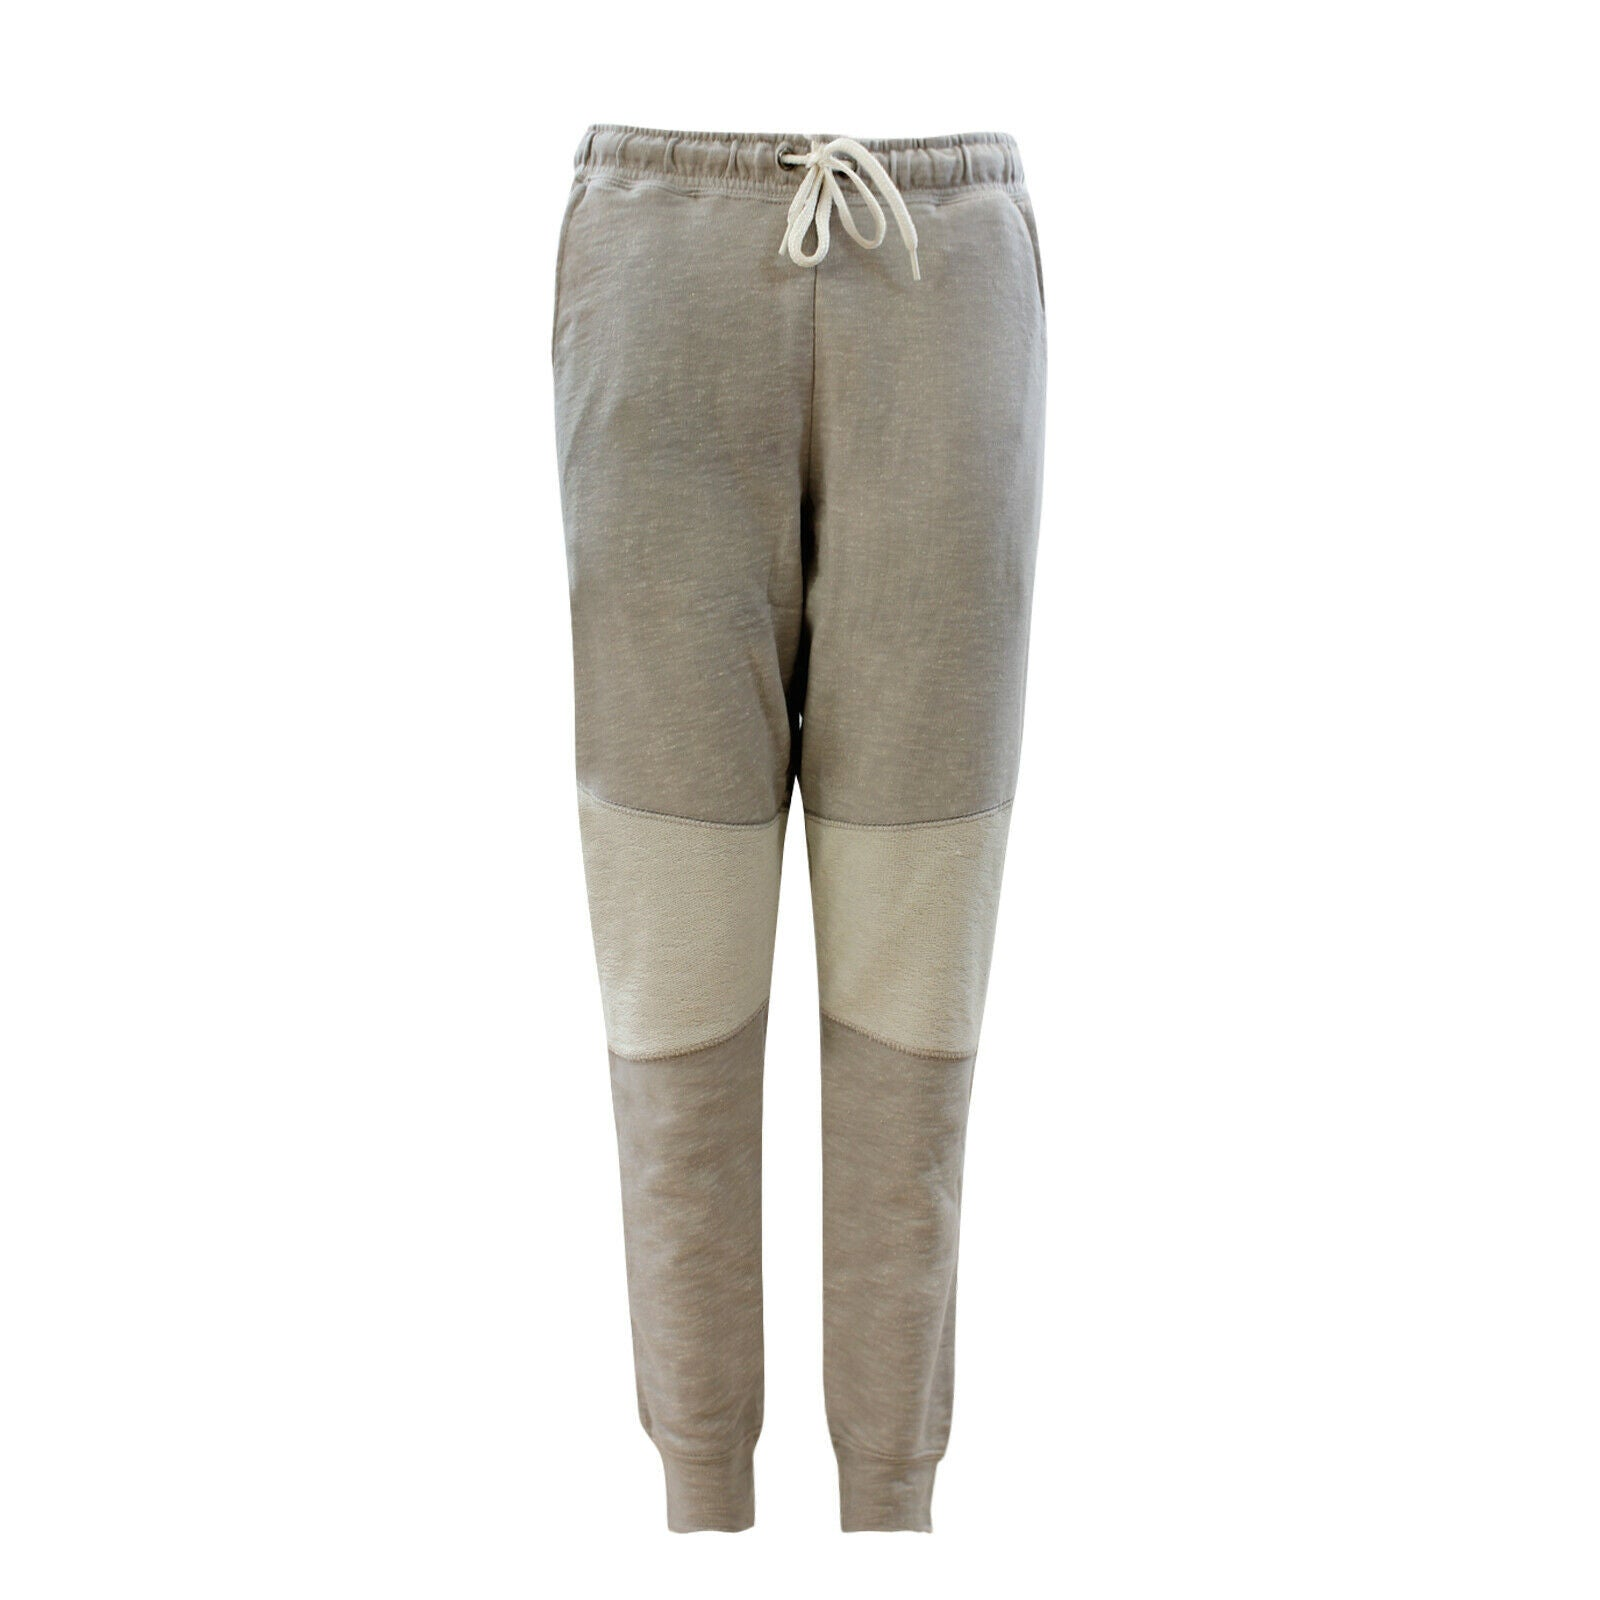 Women Grey Jogging Pants Trouser [colour]- Hautie UK, #Nightfashion | #Underfashion